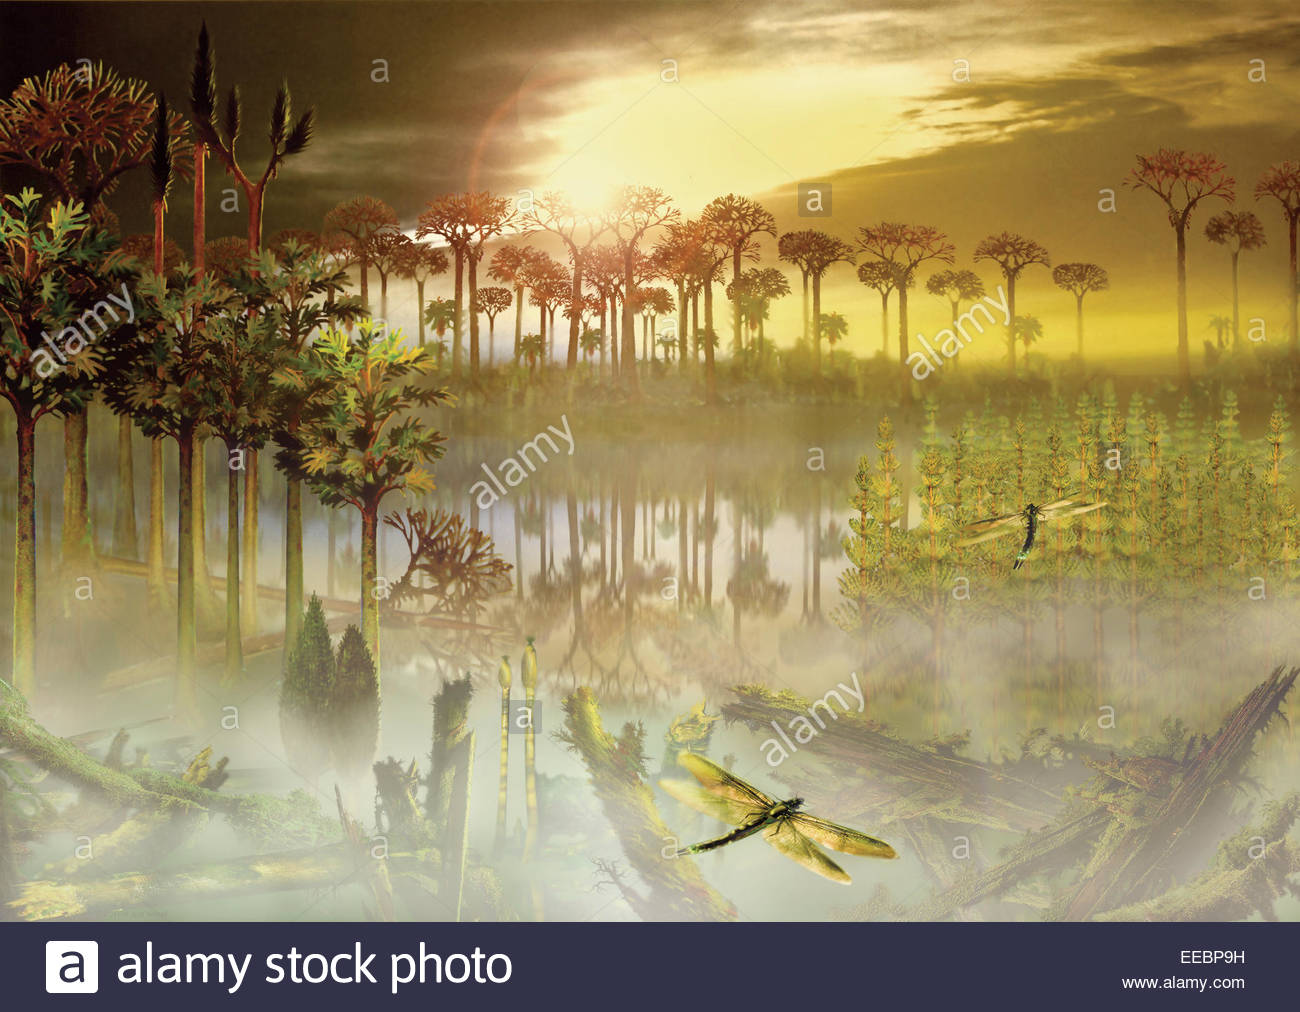 A carboniferous forest with mist rising above the waters. Stock Photo